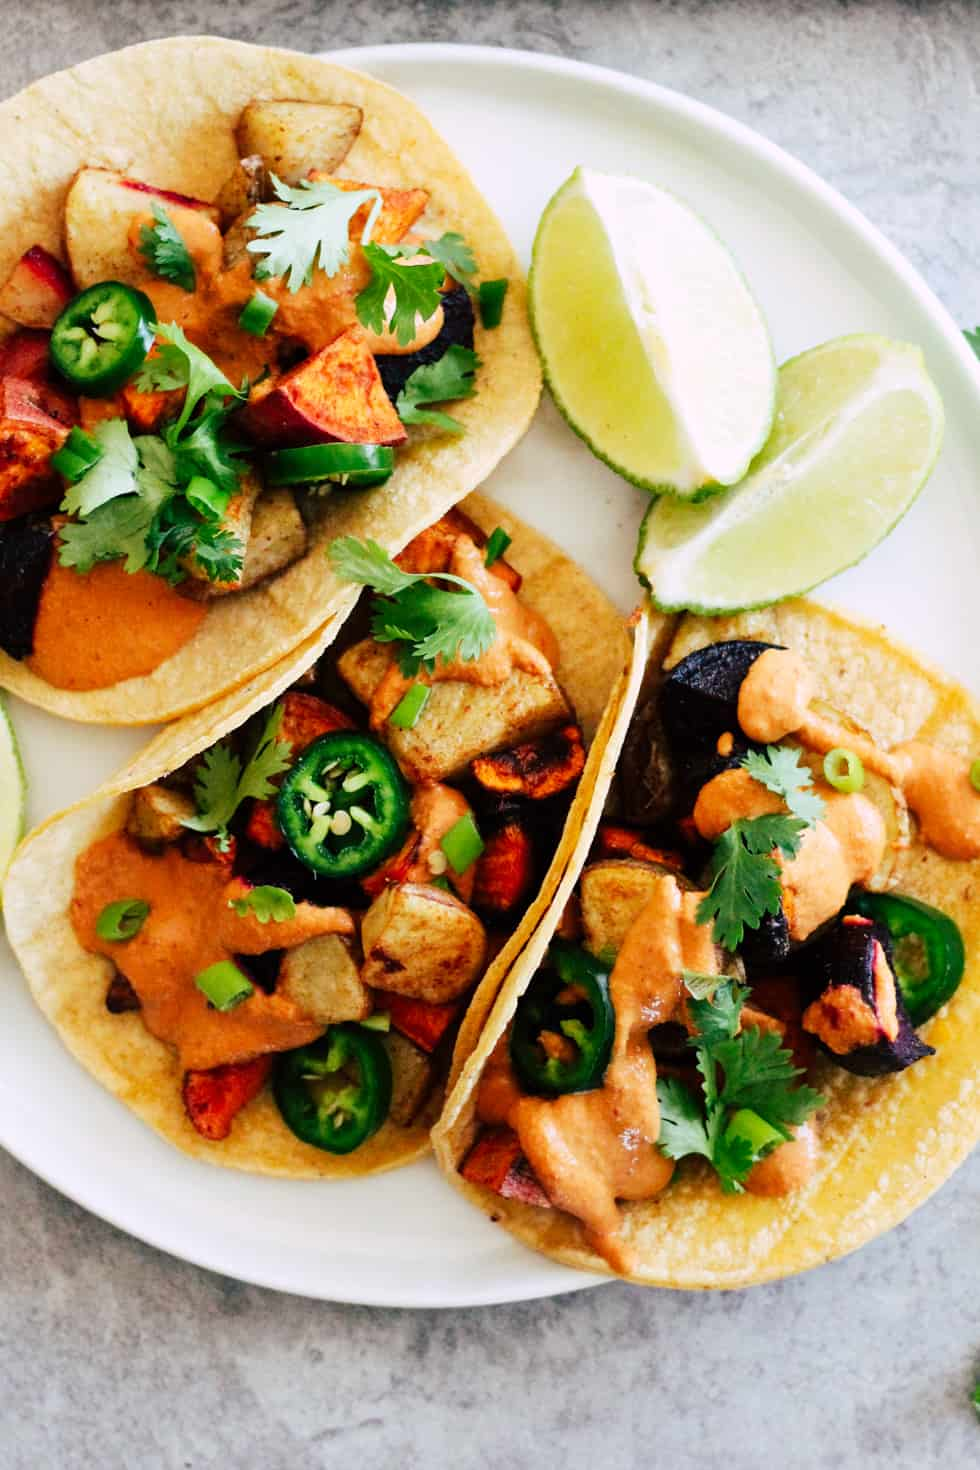 Roasted root vegetable tacos with sunflower seed queso on white plate with lime wedges.